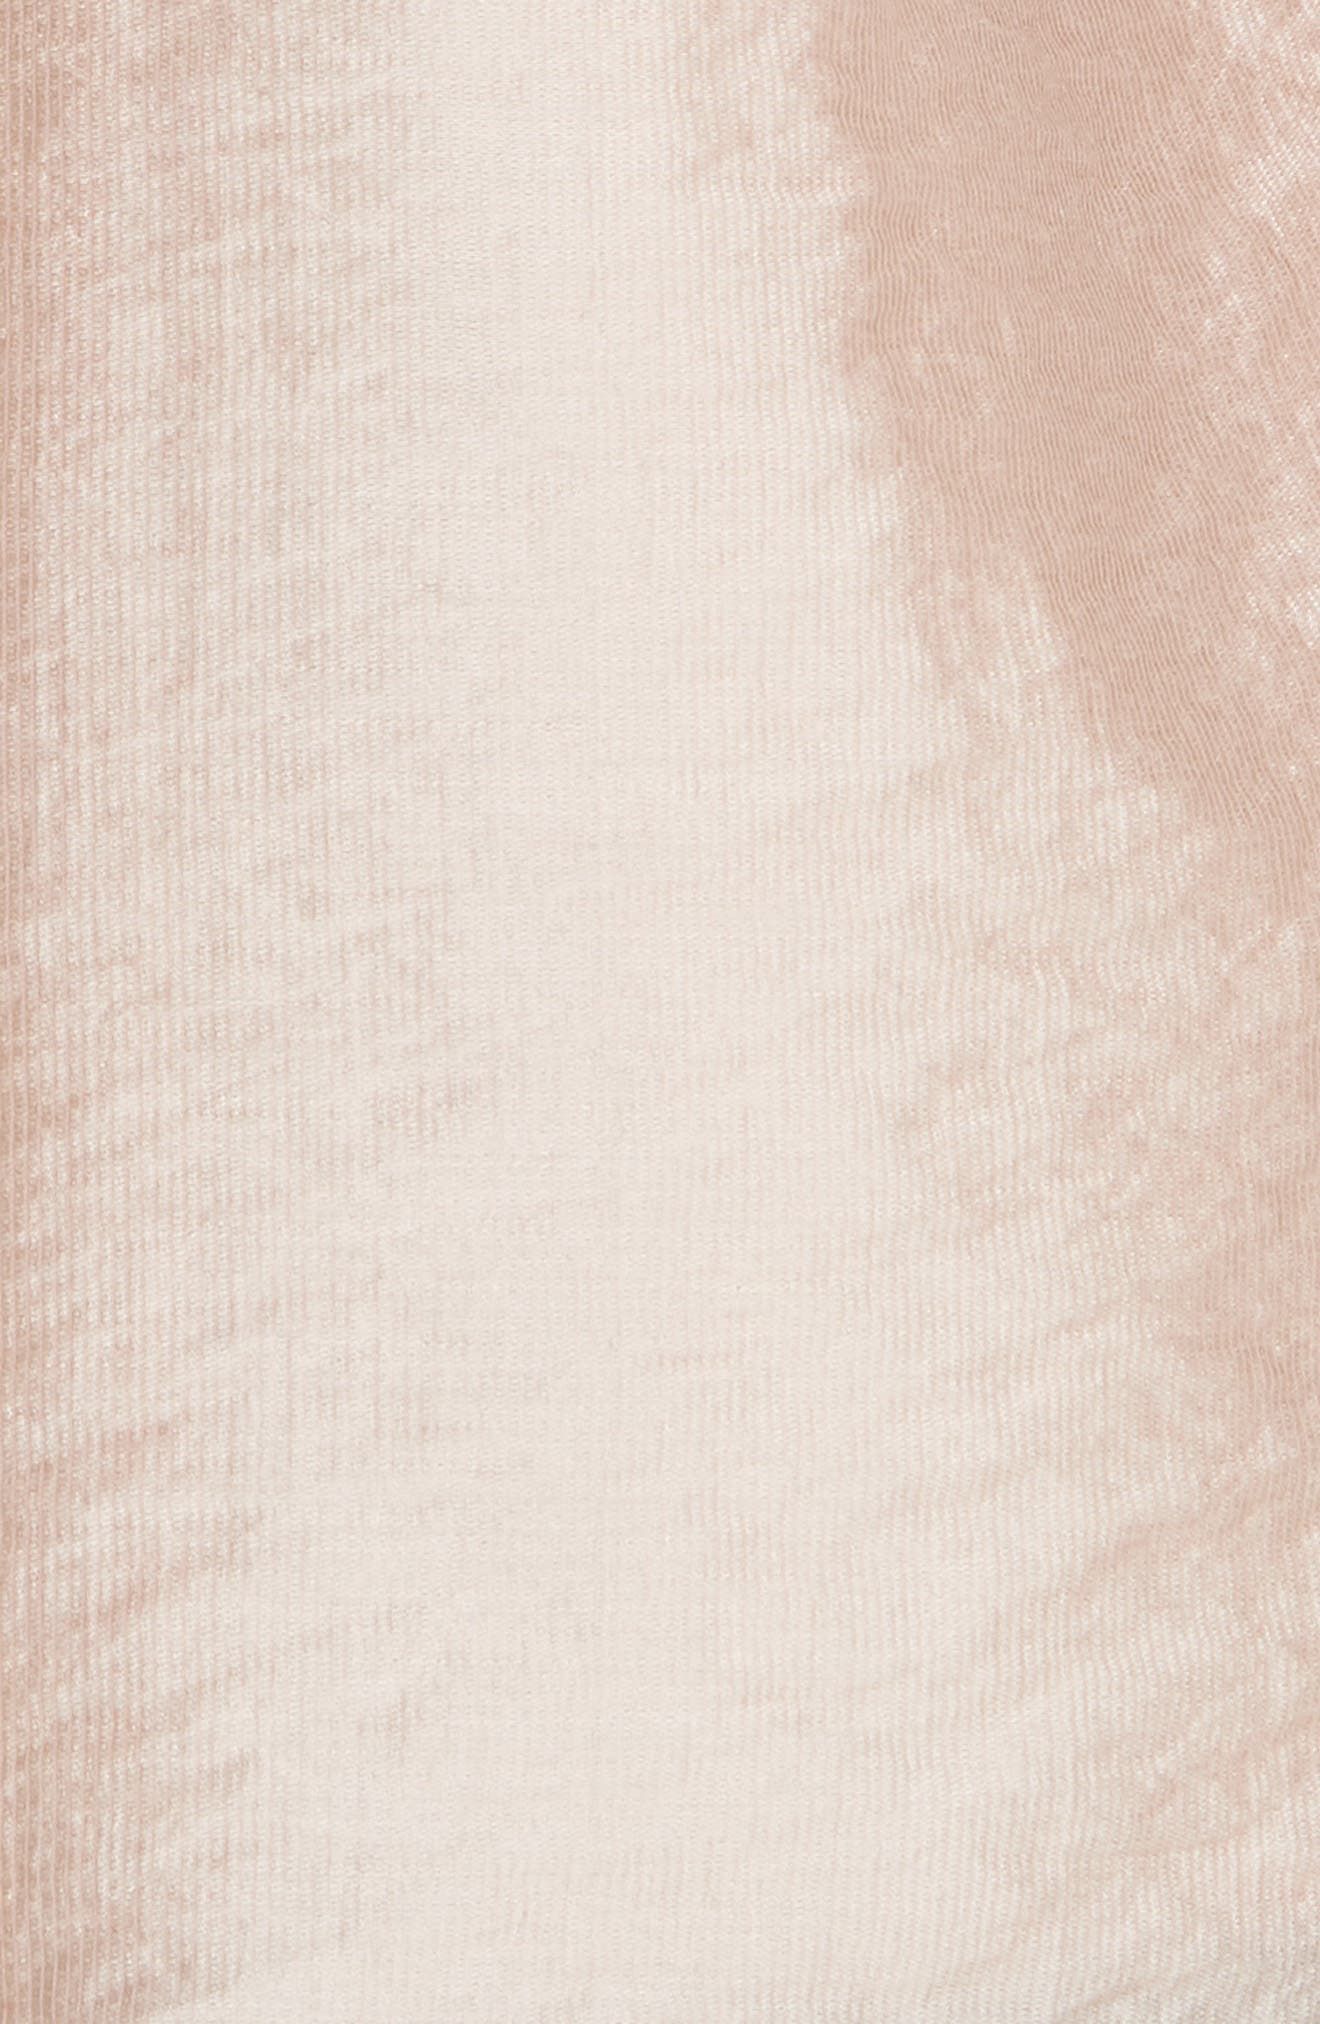 Earldena Top,                             Alternate thumbnail 6, color,                             Blush Sand